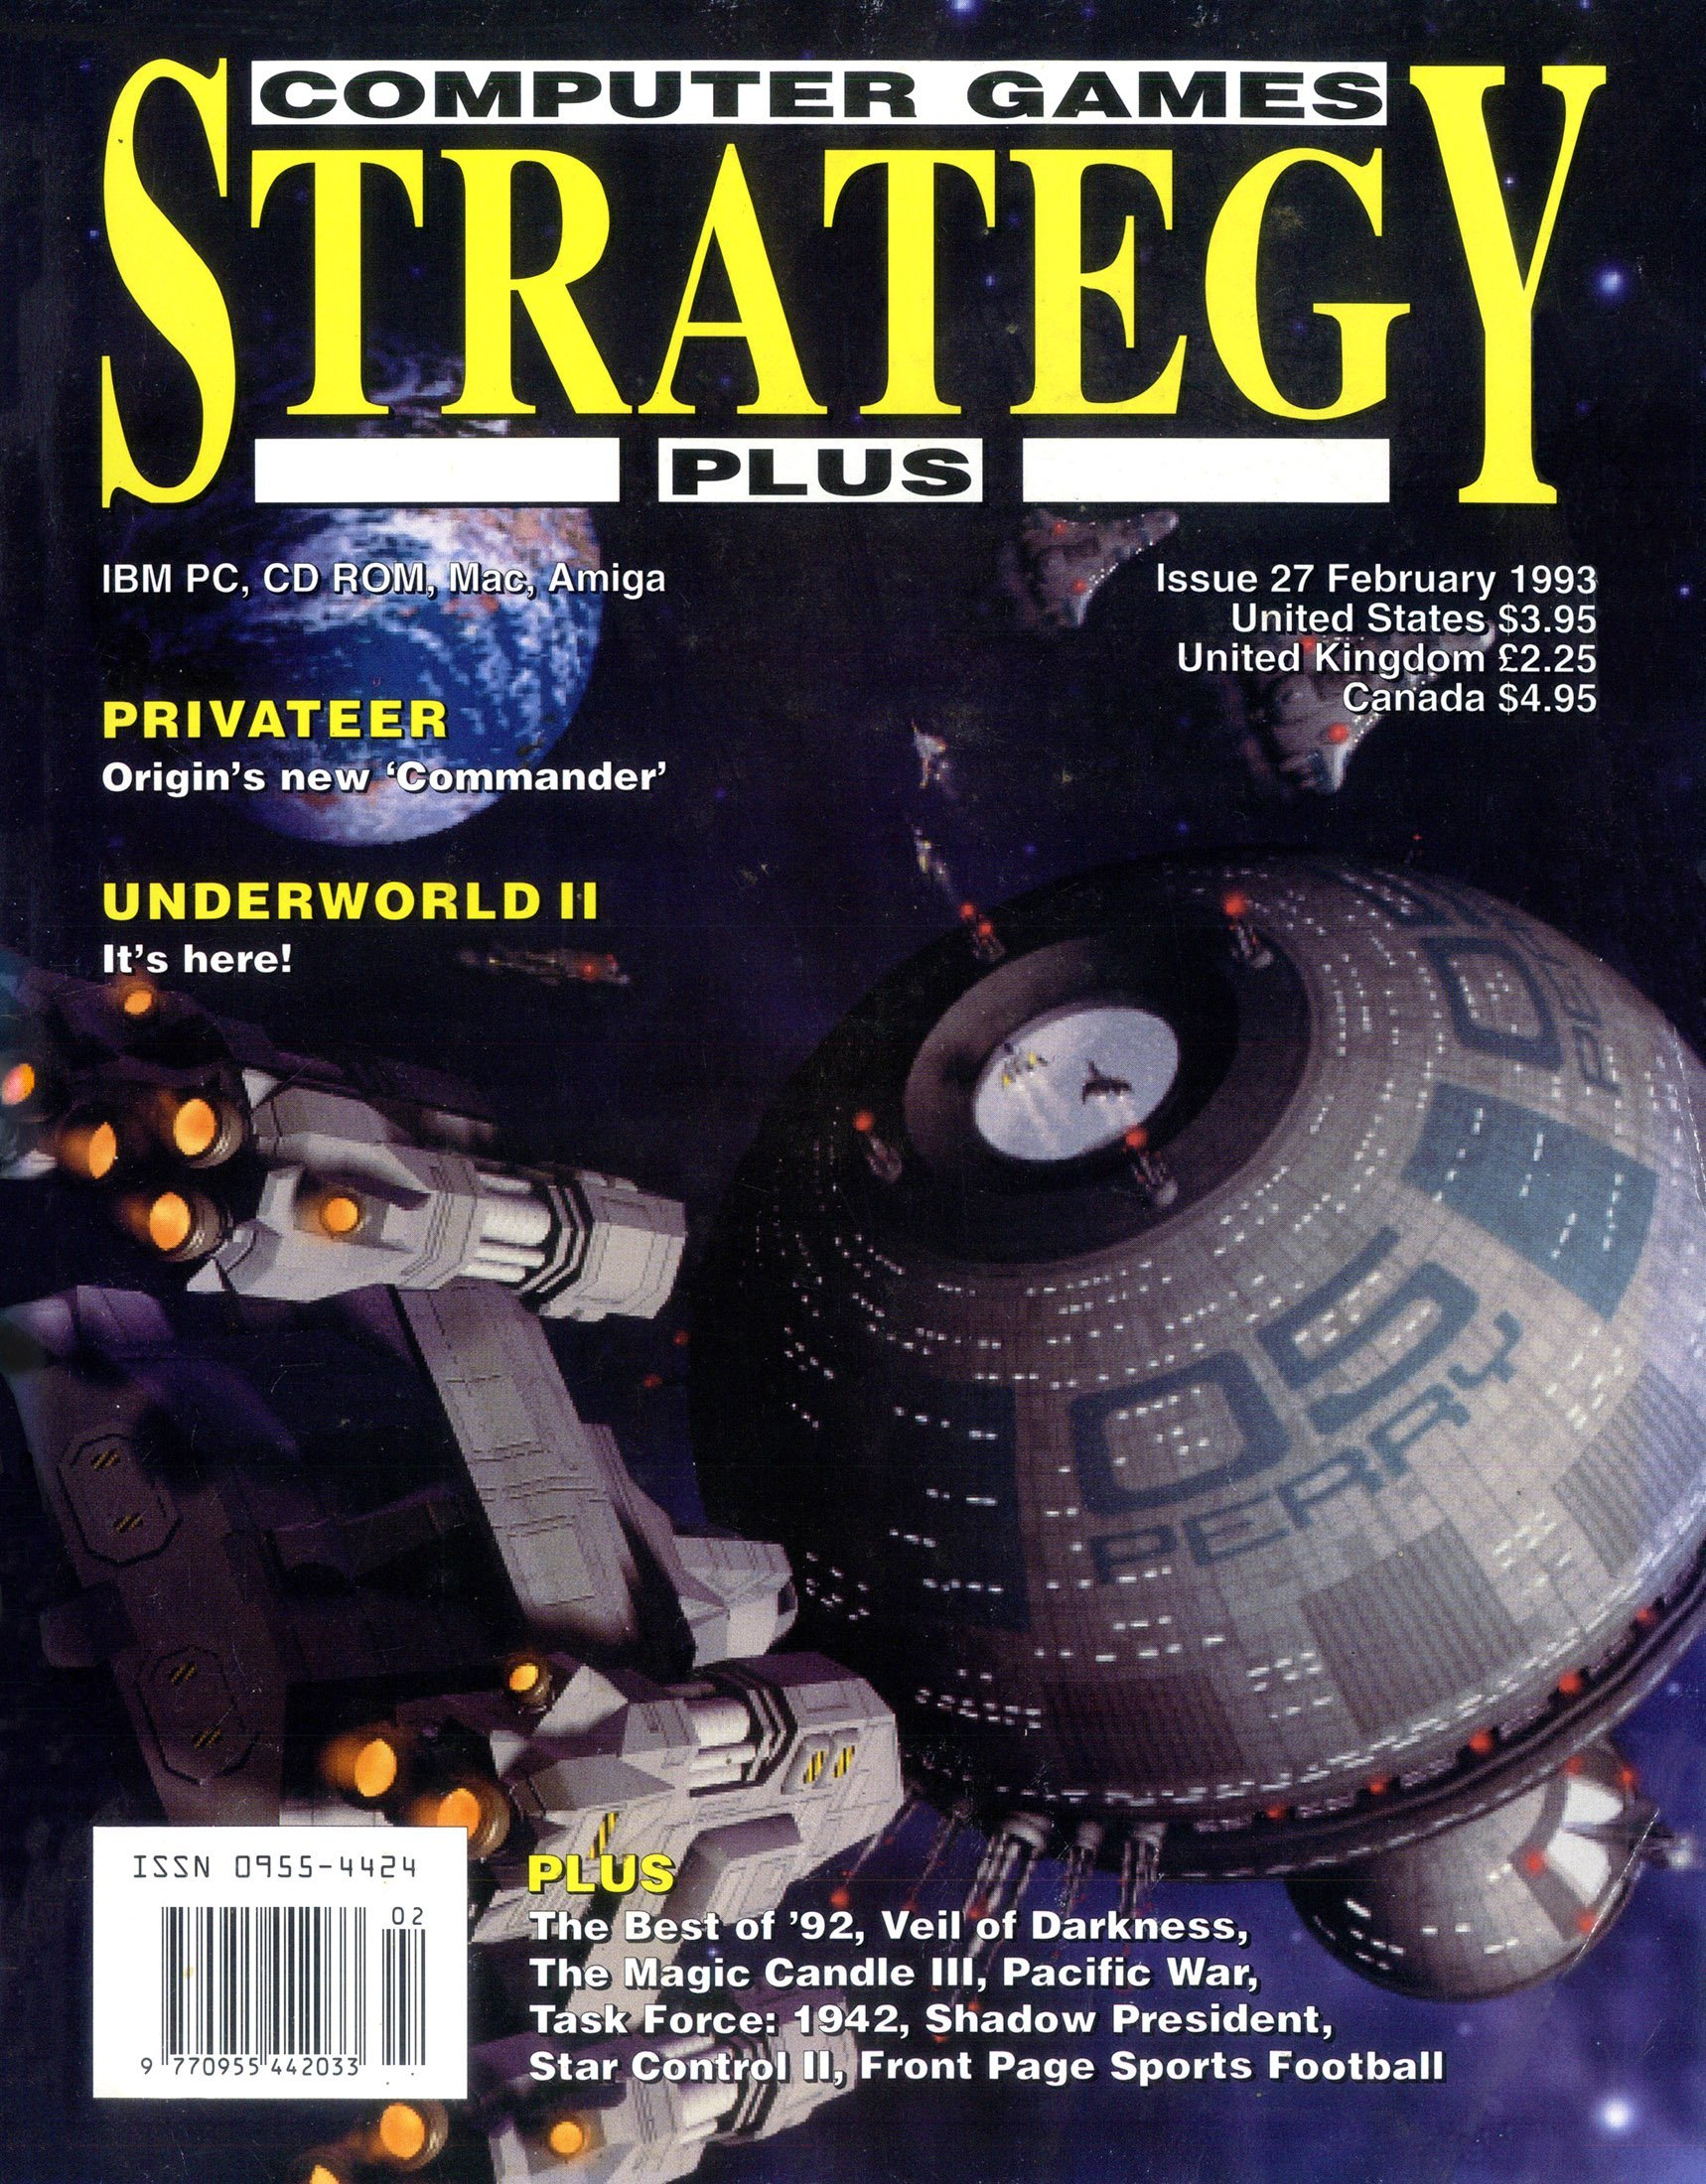 Computer Games Strategy Plus Issue 027 (February 1993)